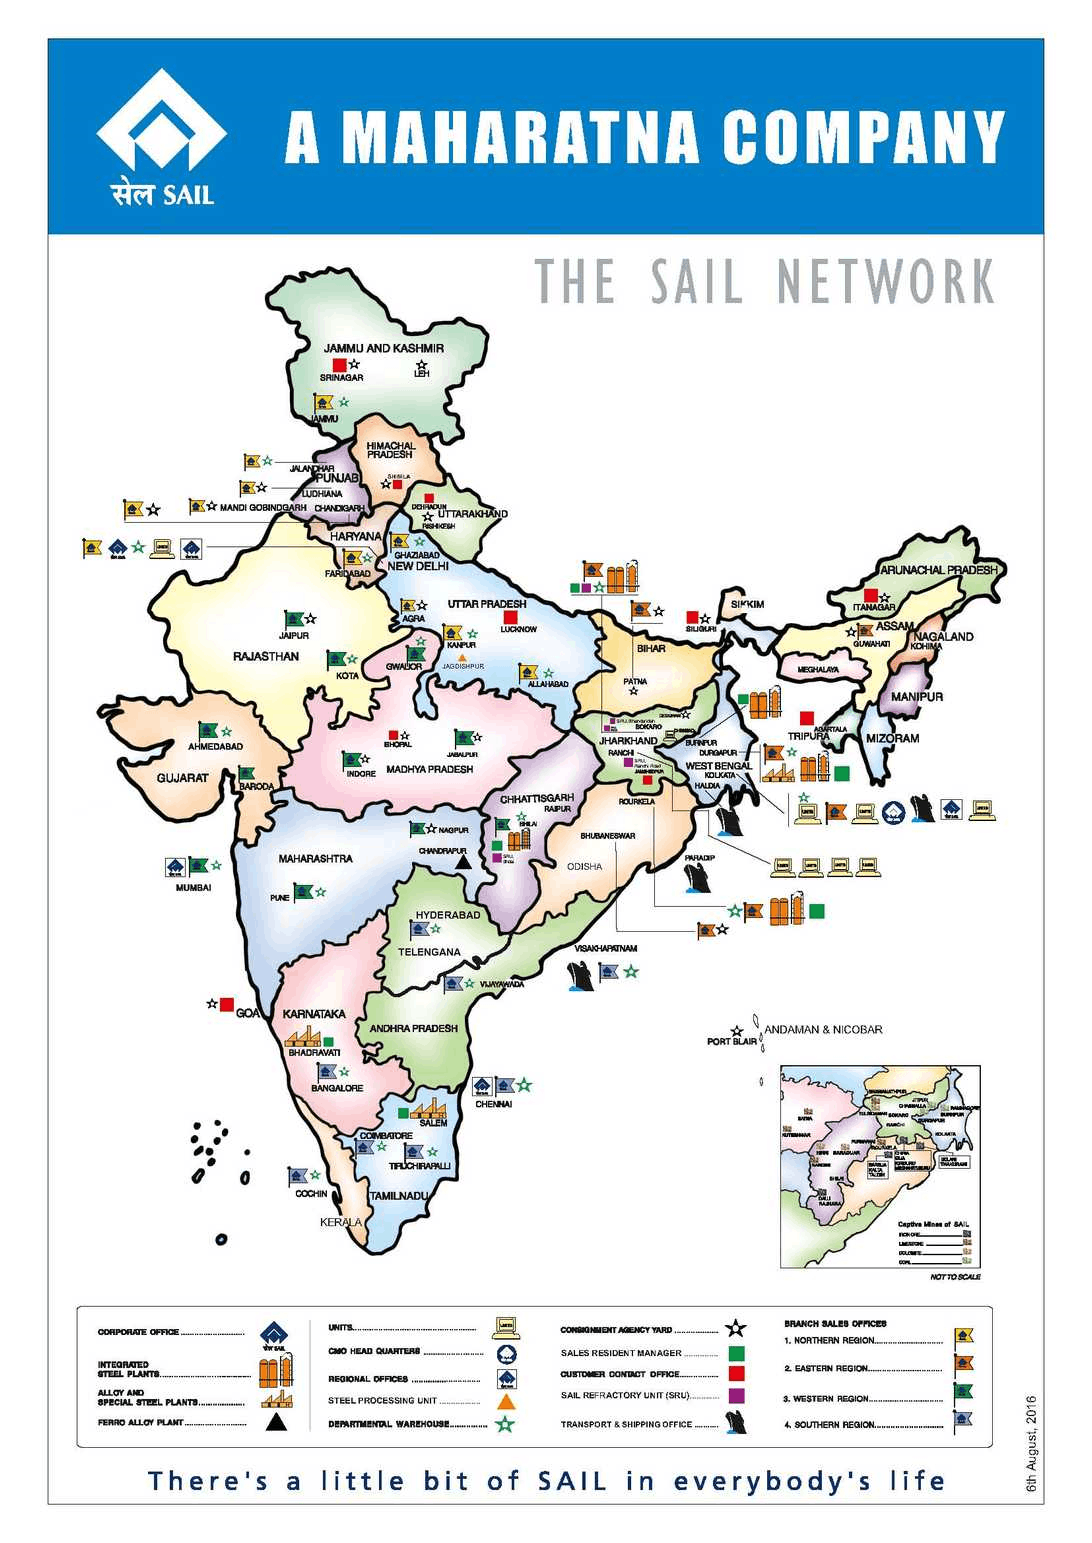 Map of A Maharatna Company(The Sail Network)